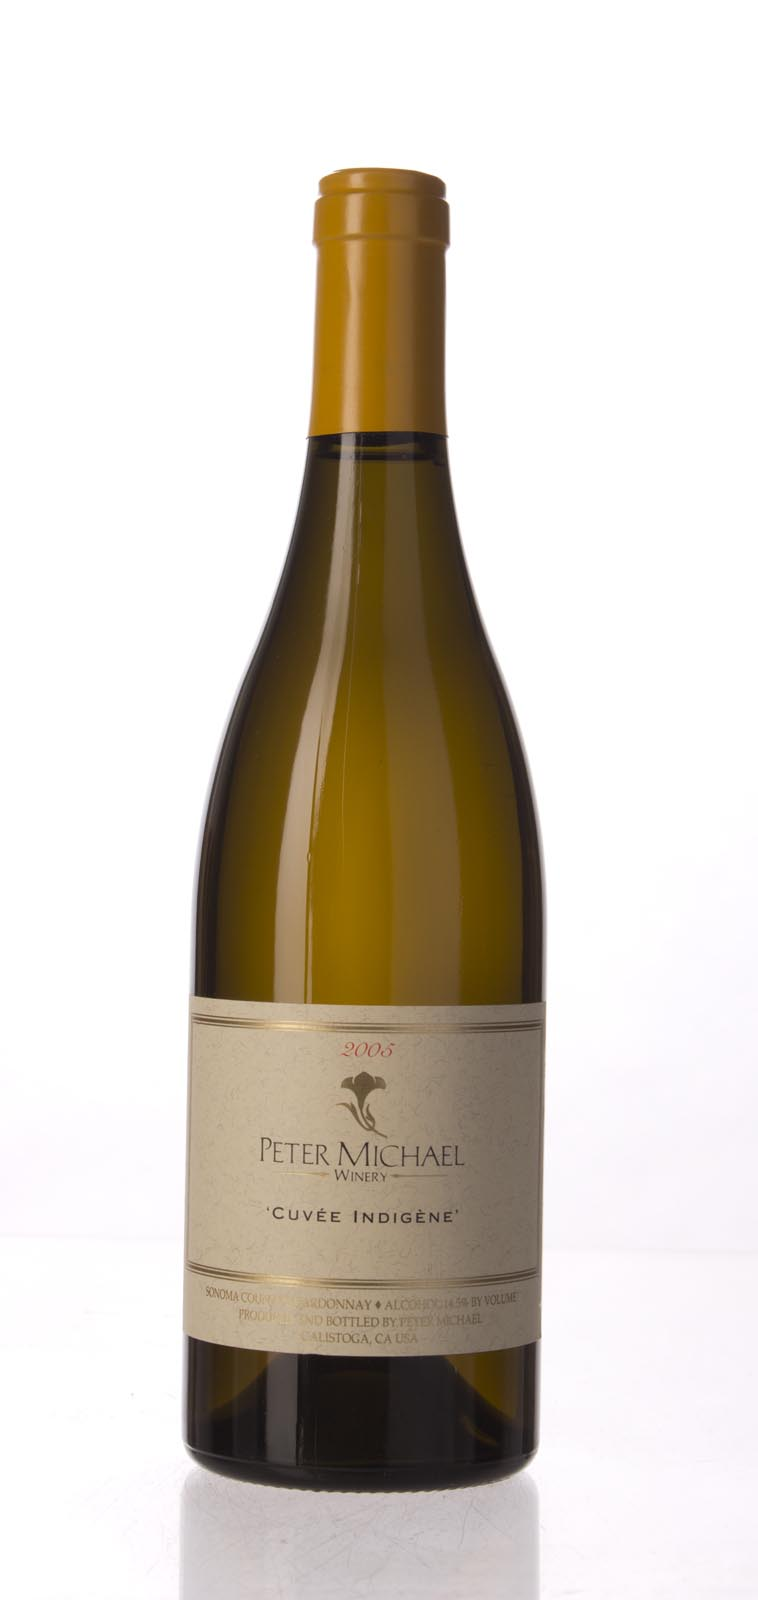 Peter Michael Winery Chardonnay Cuvee Indigene 2005, 750mL (WA96) from The BPW - Merchants of rare and fine wines.